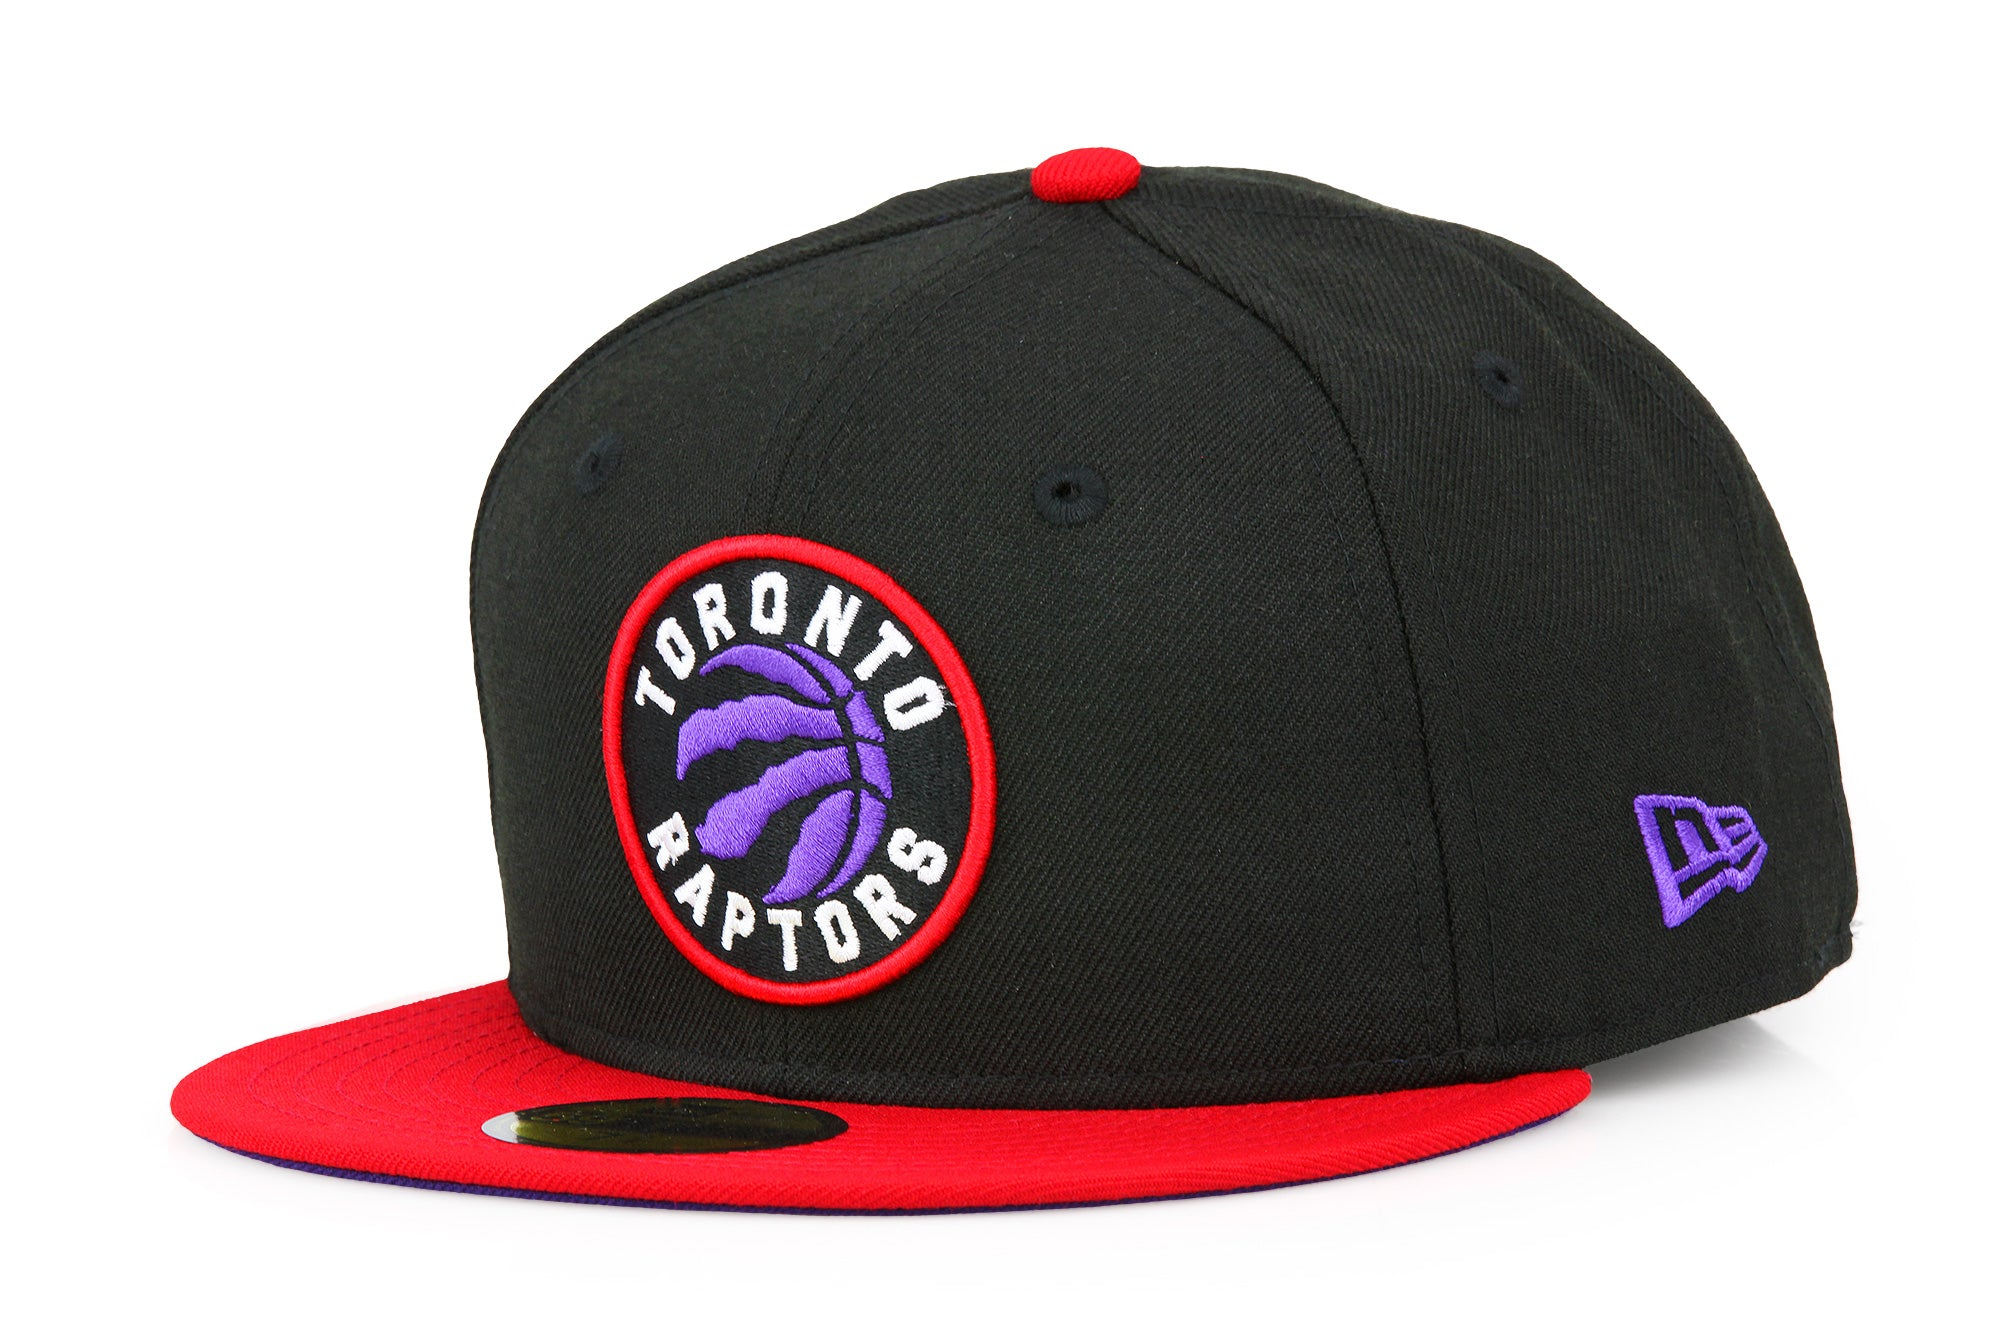 New Era Snapback Hats – My Fitteds 01477b0a2ae5